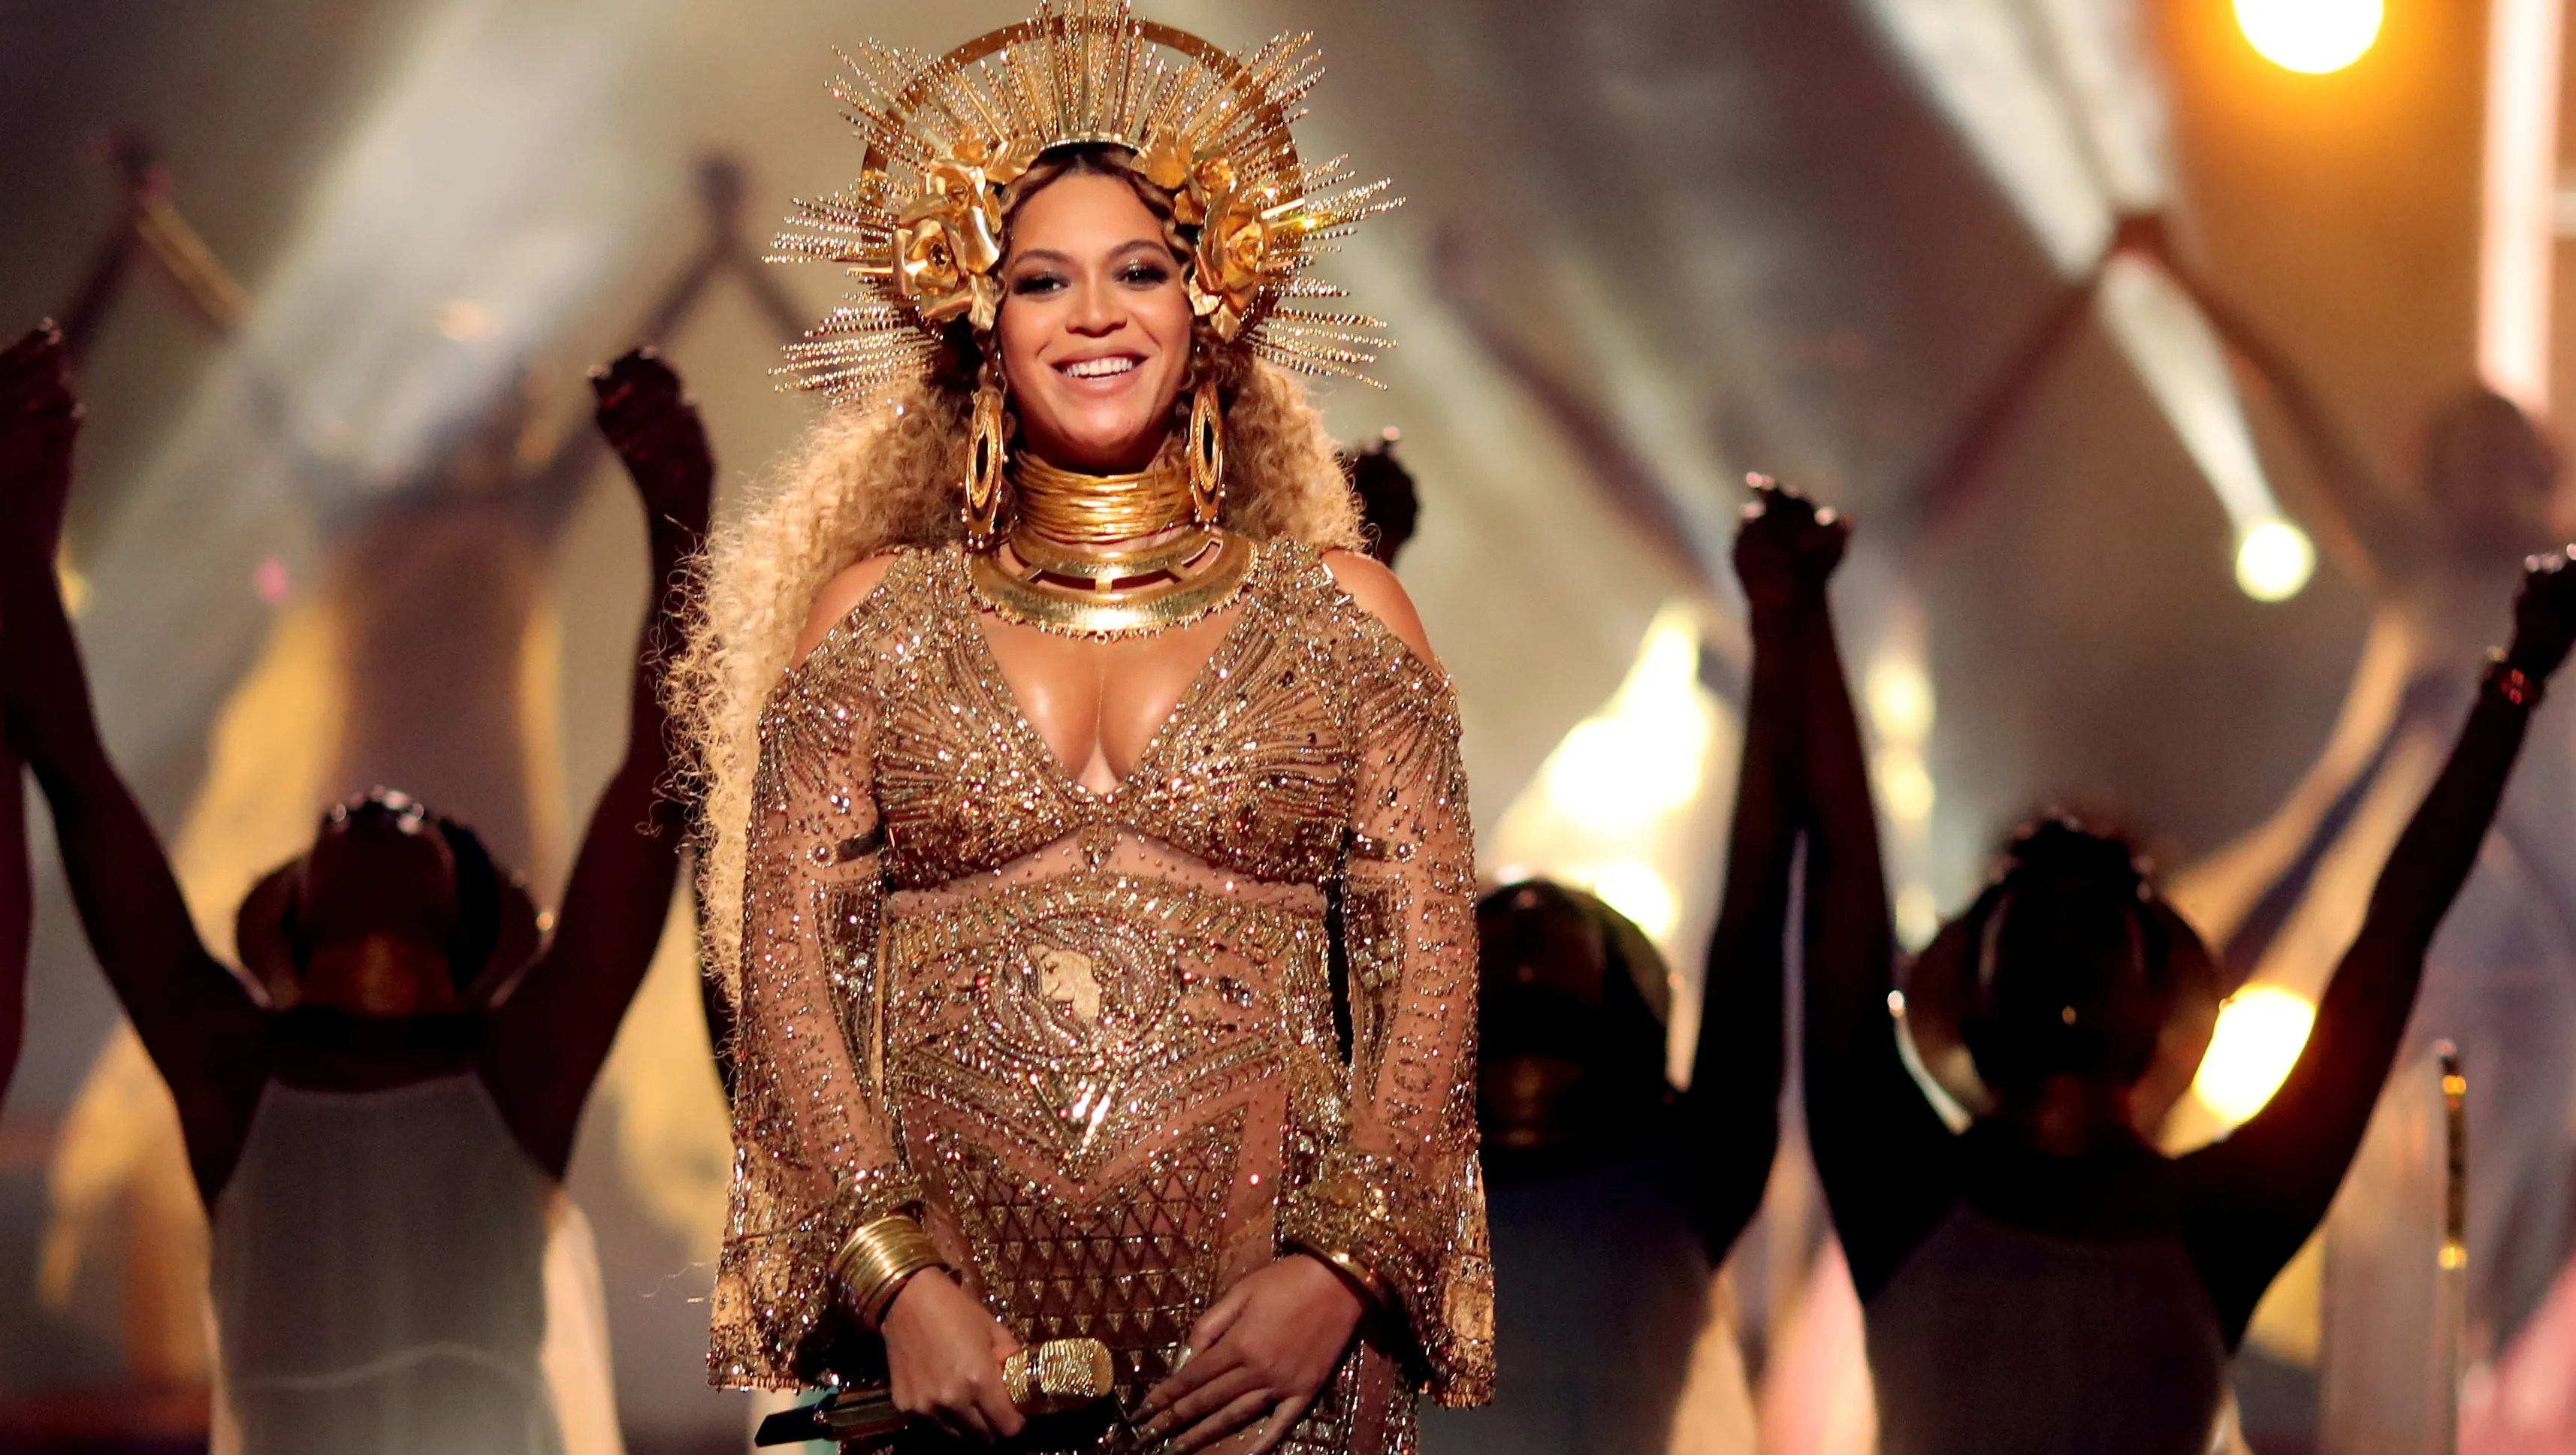 beyonce will not perform at coachella